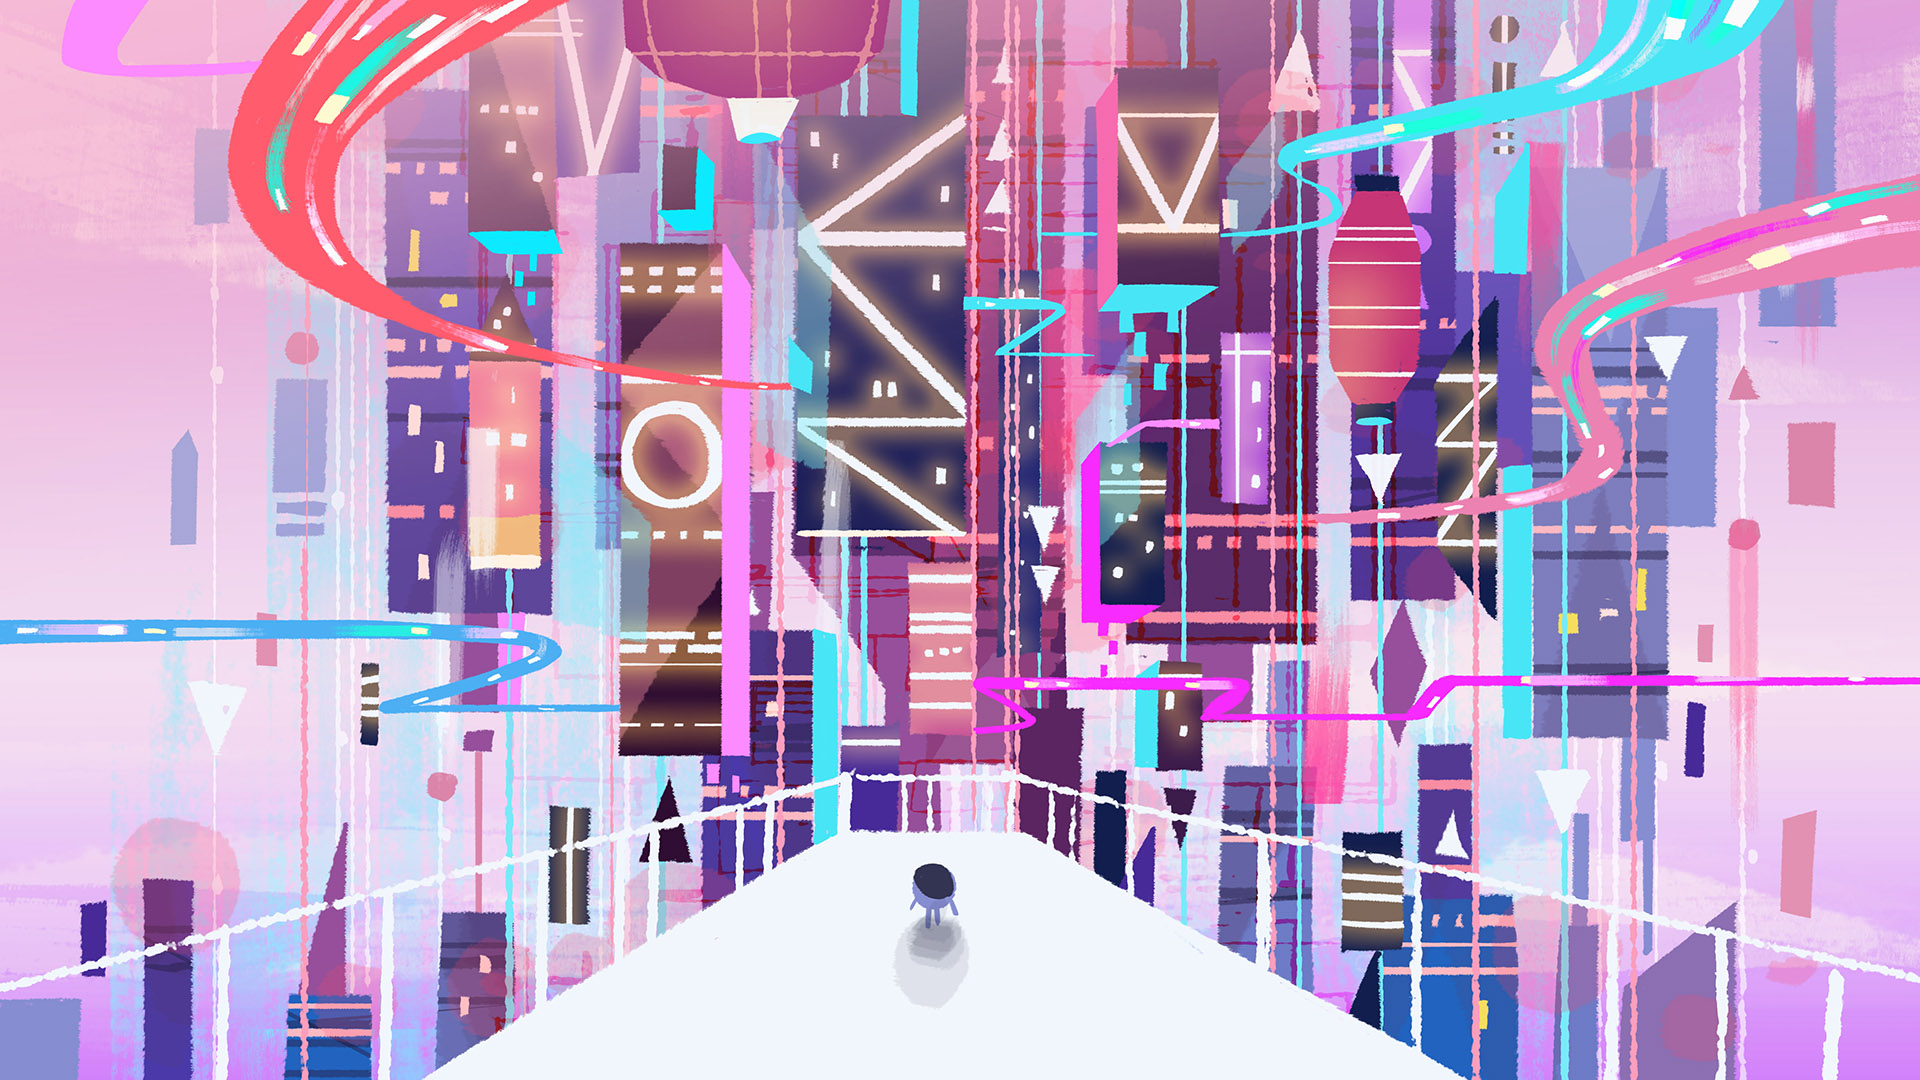 Cloudy City early development